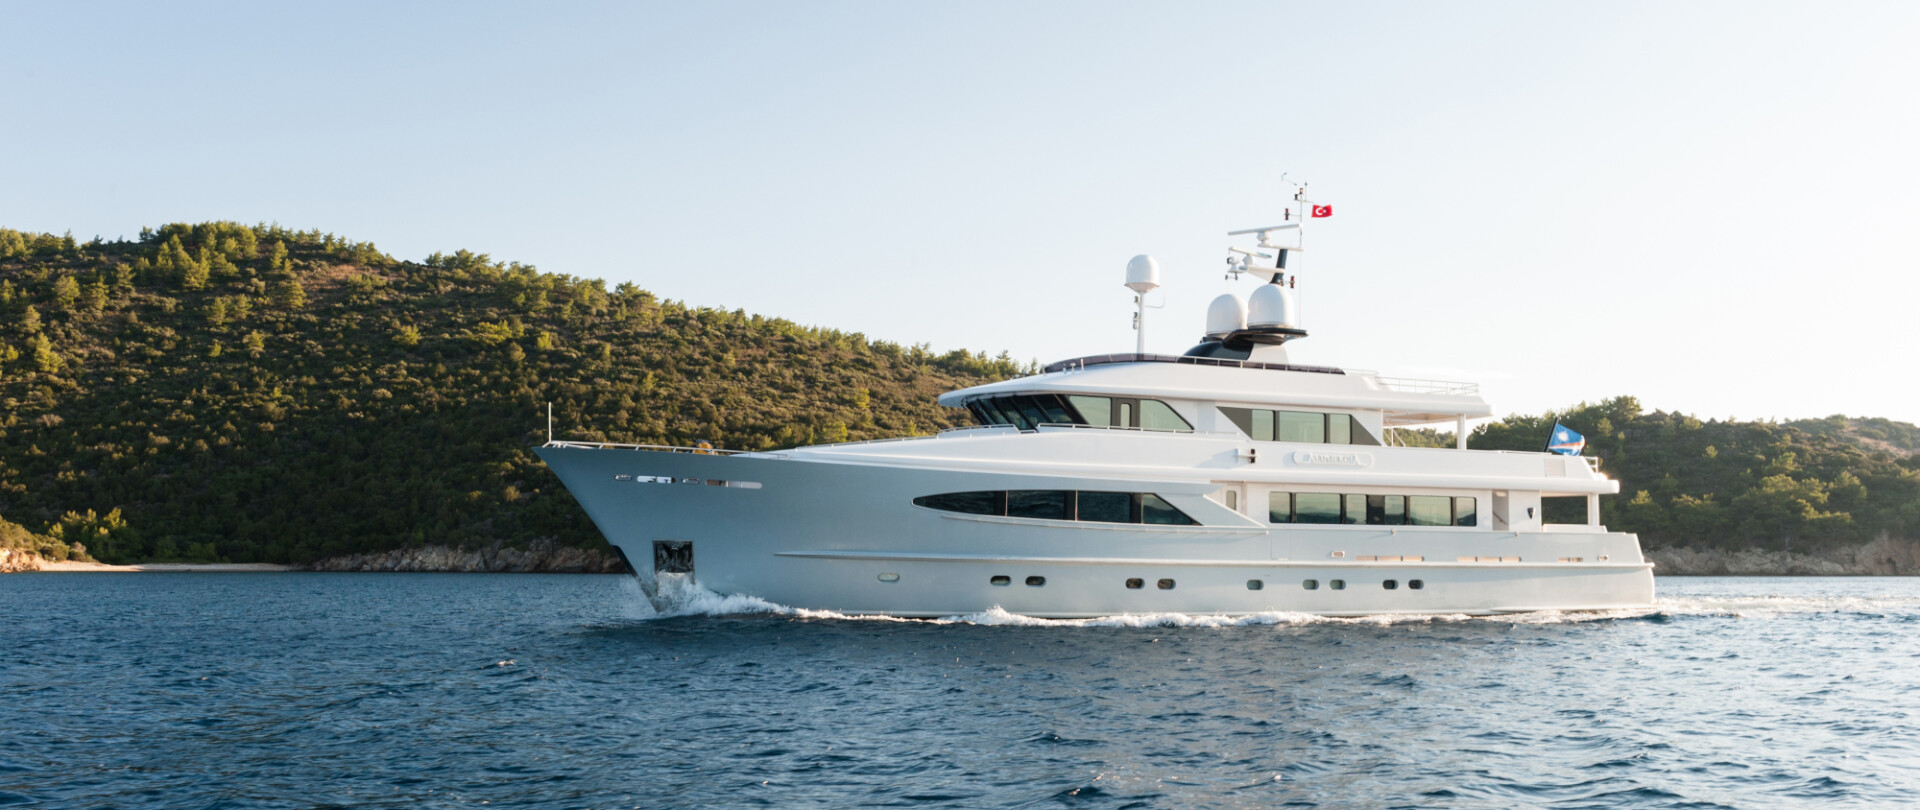 ALUMERCIA - Price reduction / At anchor during MYS 2017 photo 1